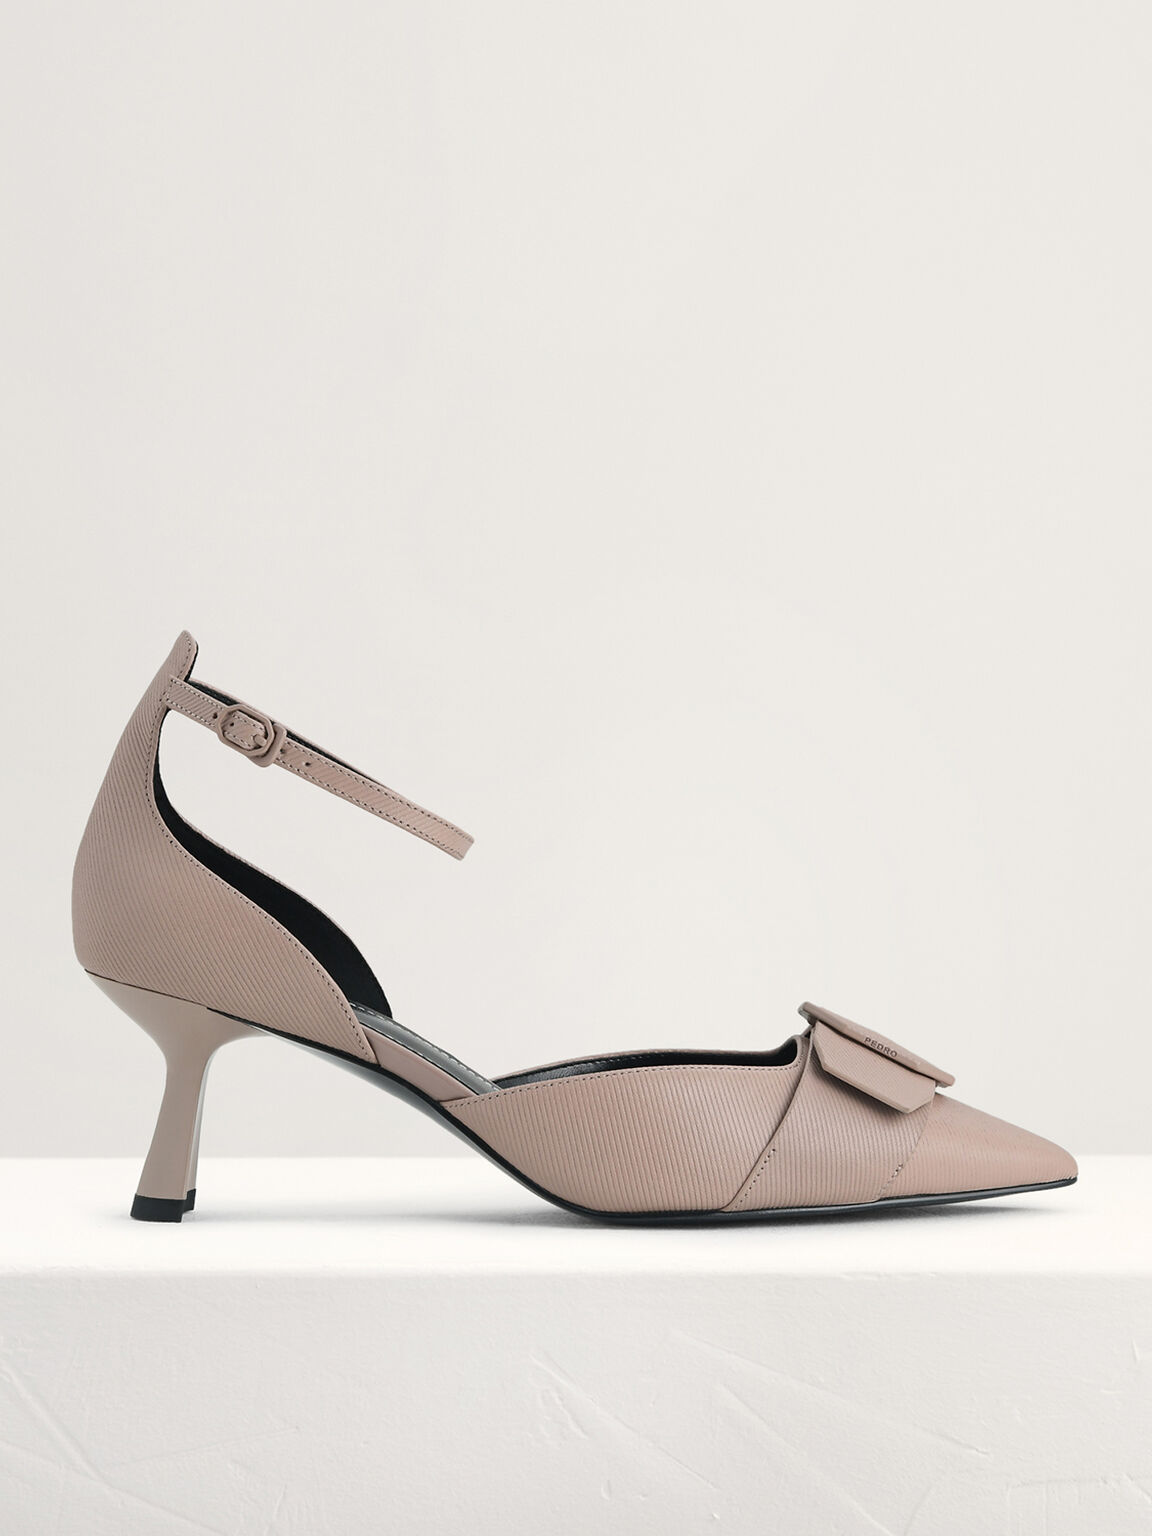 Textured Leather Slingback Pumps, Taupe, hi-res